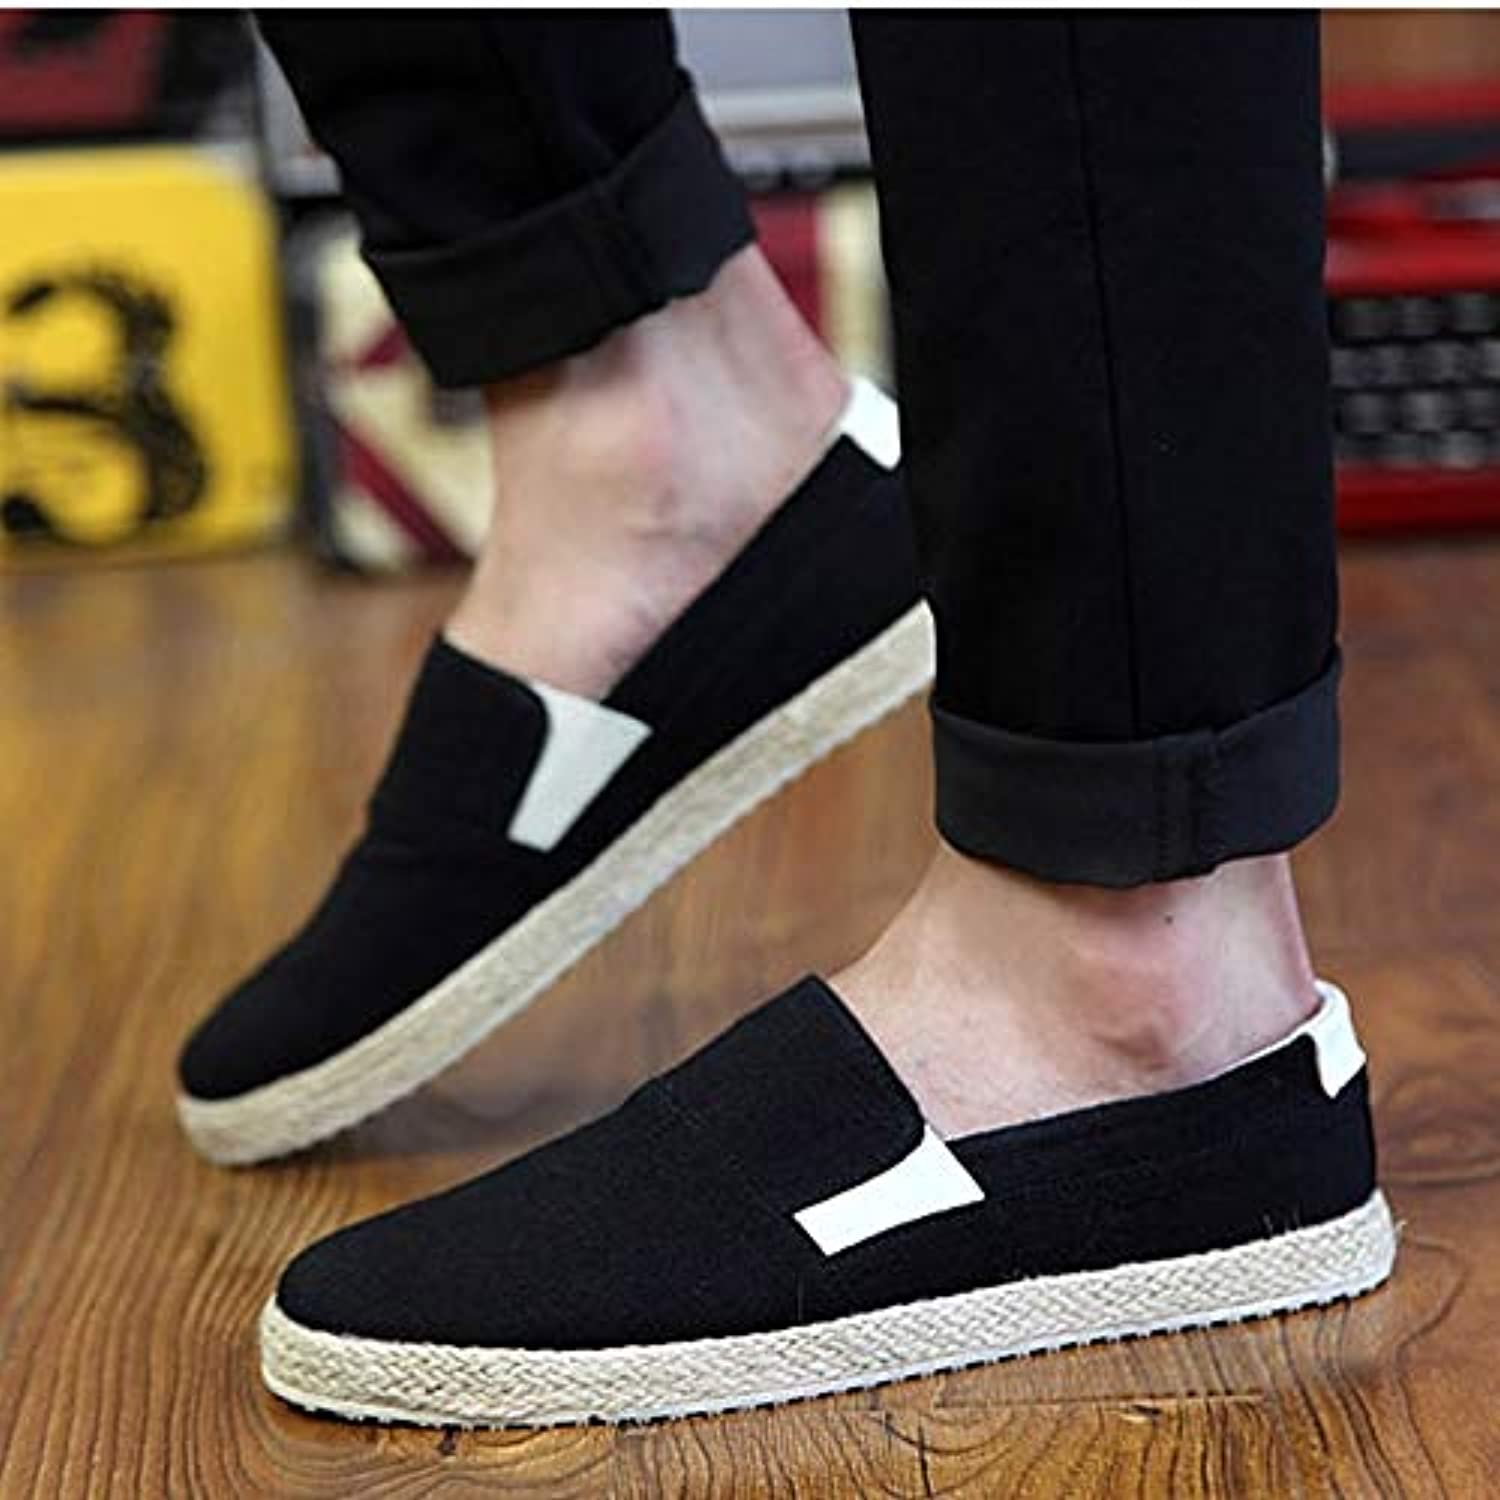 Anstorematealliance Outdoor&Sports shoes Low-top Breathable Business Casual shoes for Men (color Black Size 39)